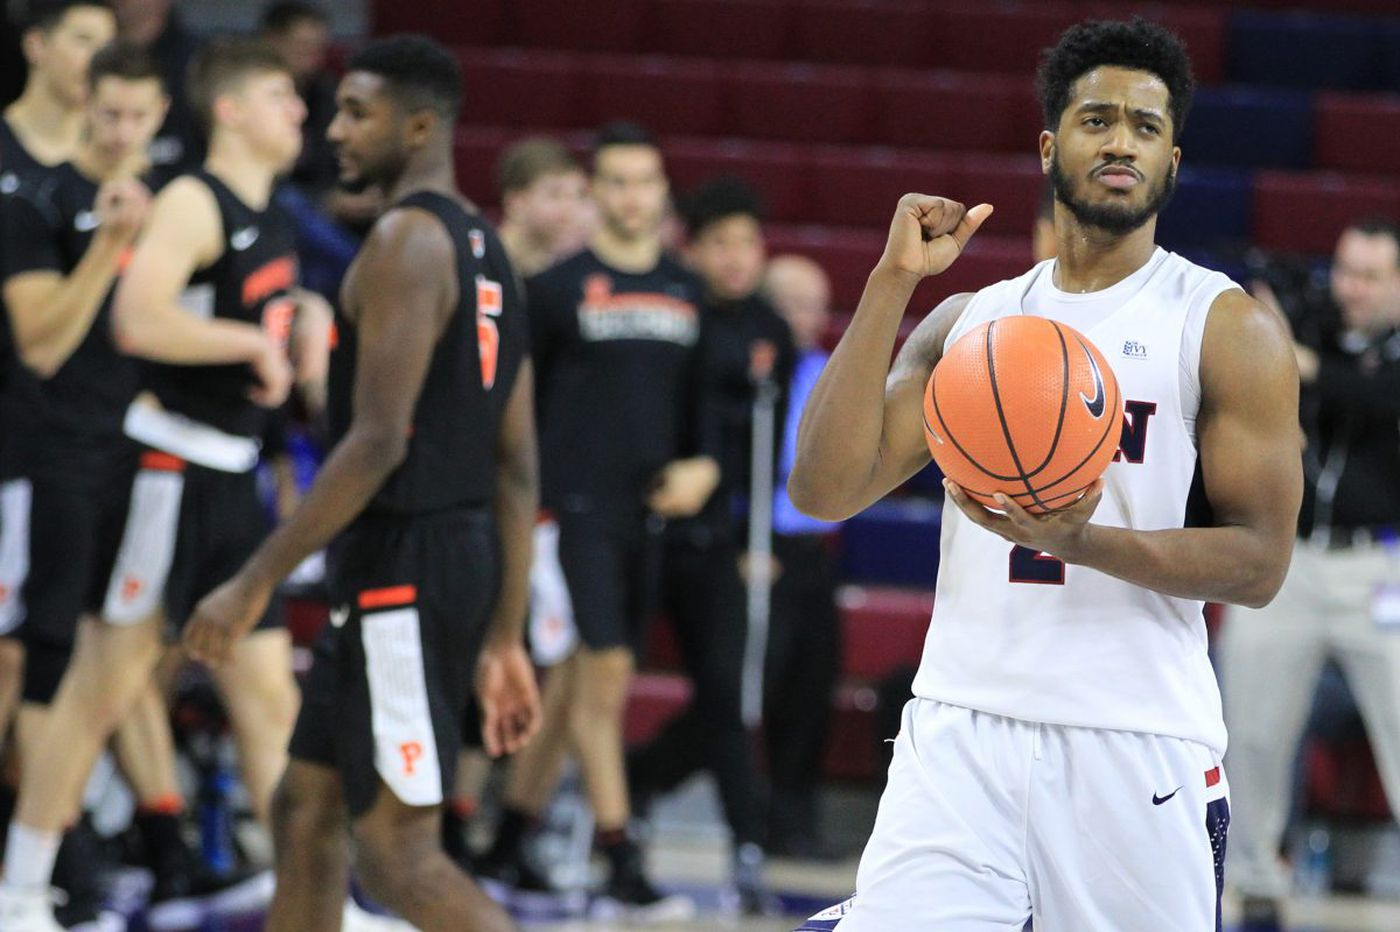 Penn's Antonio Woods went from morgue duty to solid contributor